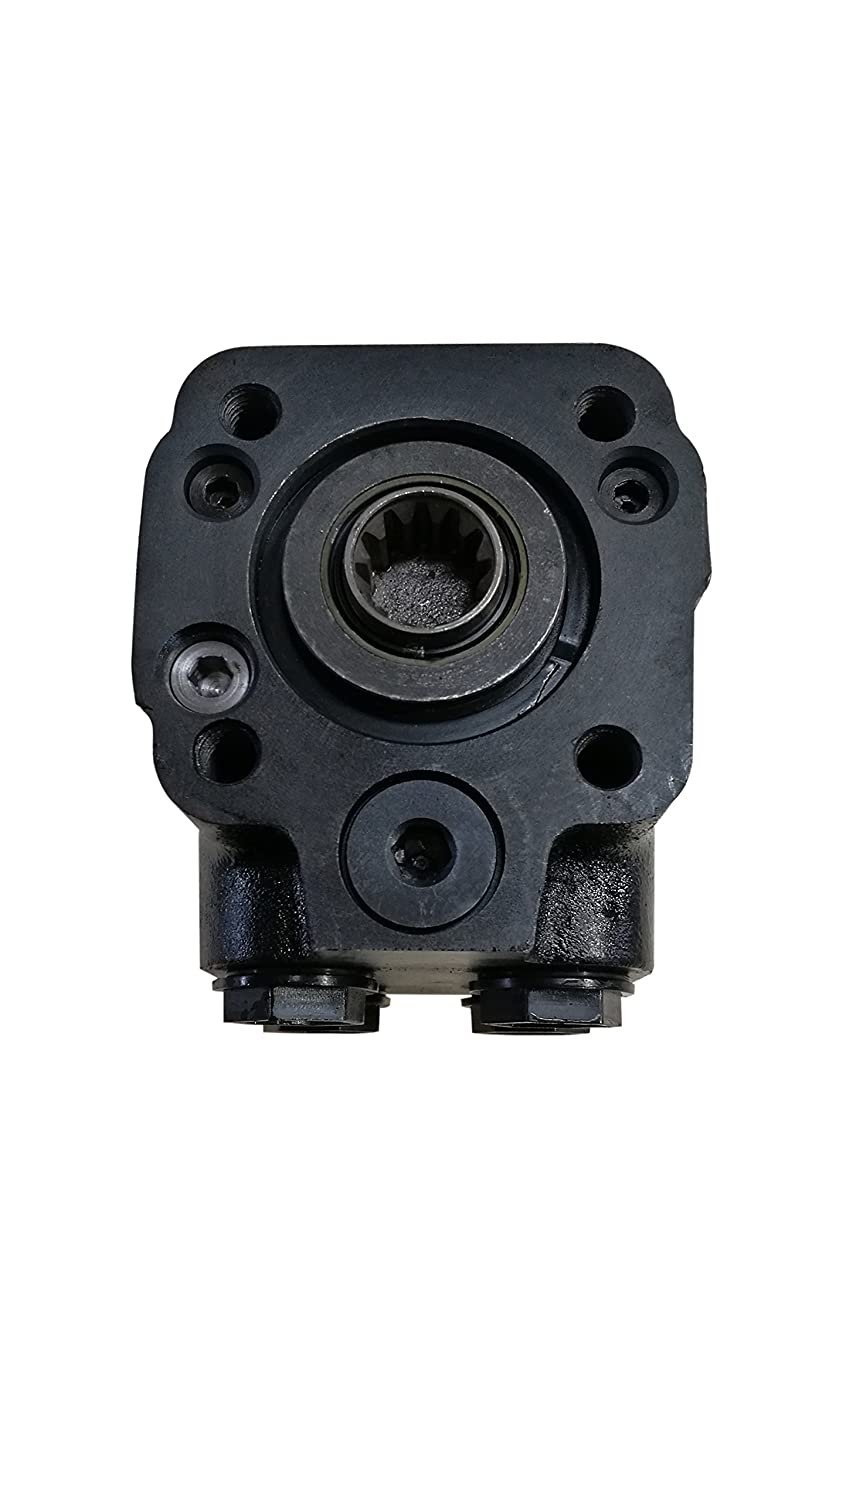 Hydraulic Steering Unit New Developed M+S HKUS series replacement for OSPC--100cc, G1/2 NPT Ports TG02203 Fei Yue